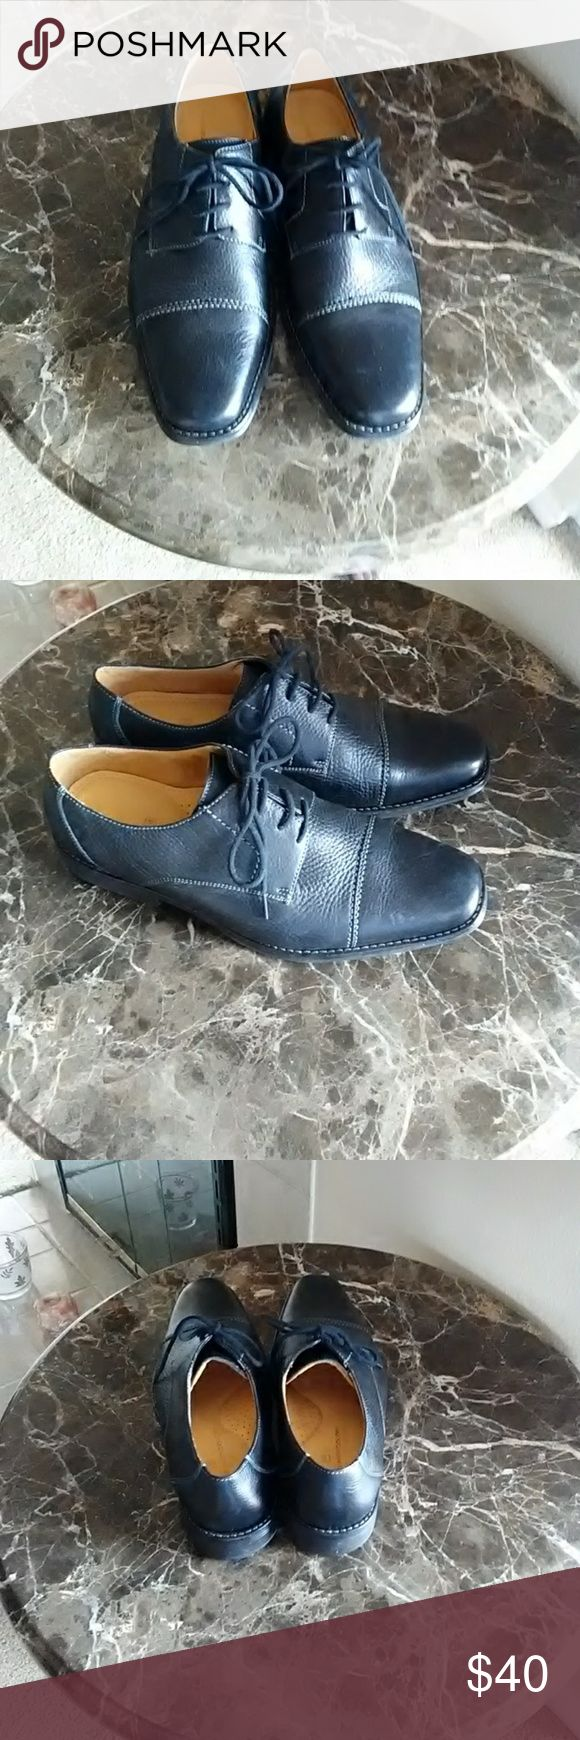 Sandro Moscoloni men shoed Men Sandro Moscoloni made in Brazil leather shoes very comfortable in size 11D. Excellent condition Sandro Moscoloni Shoes